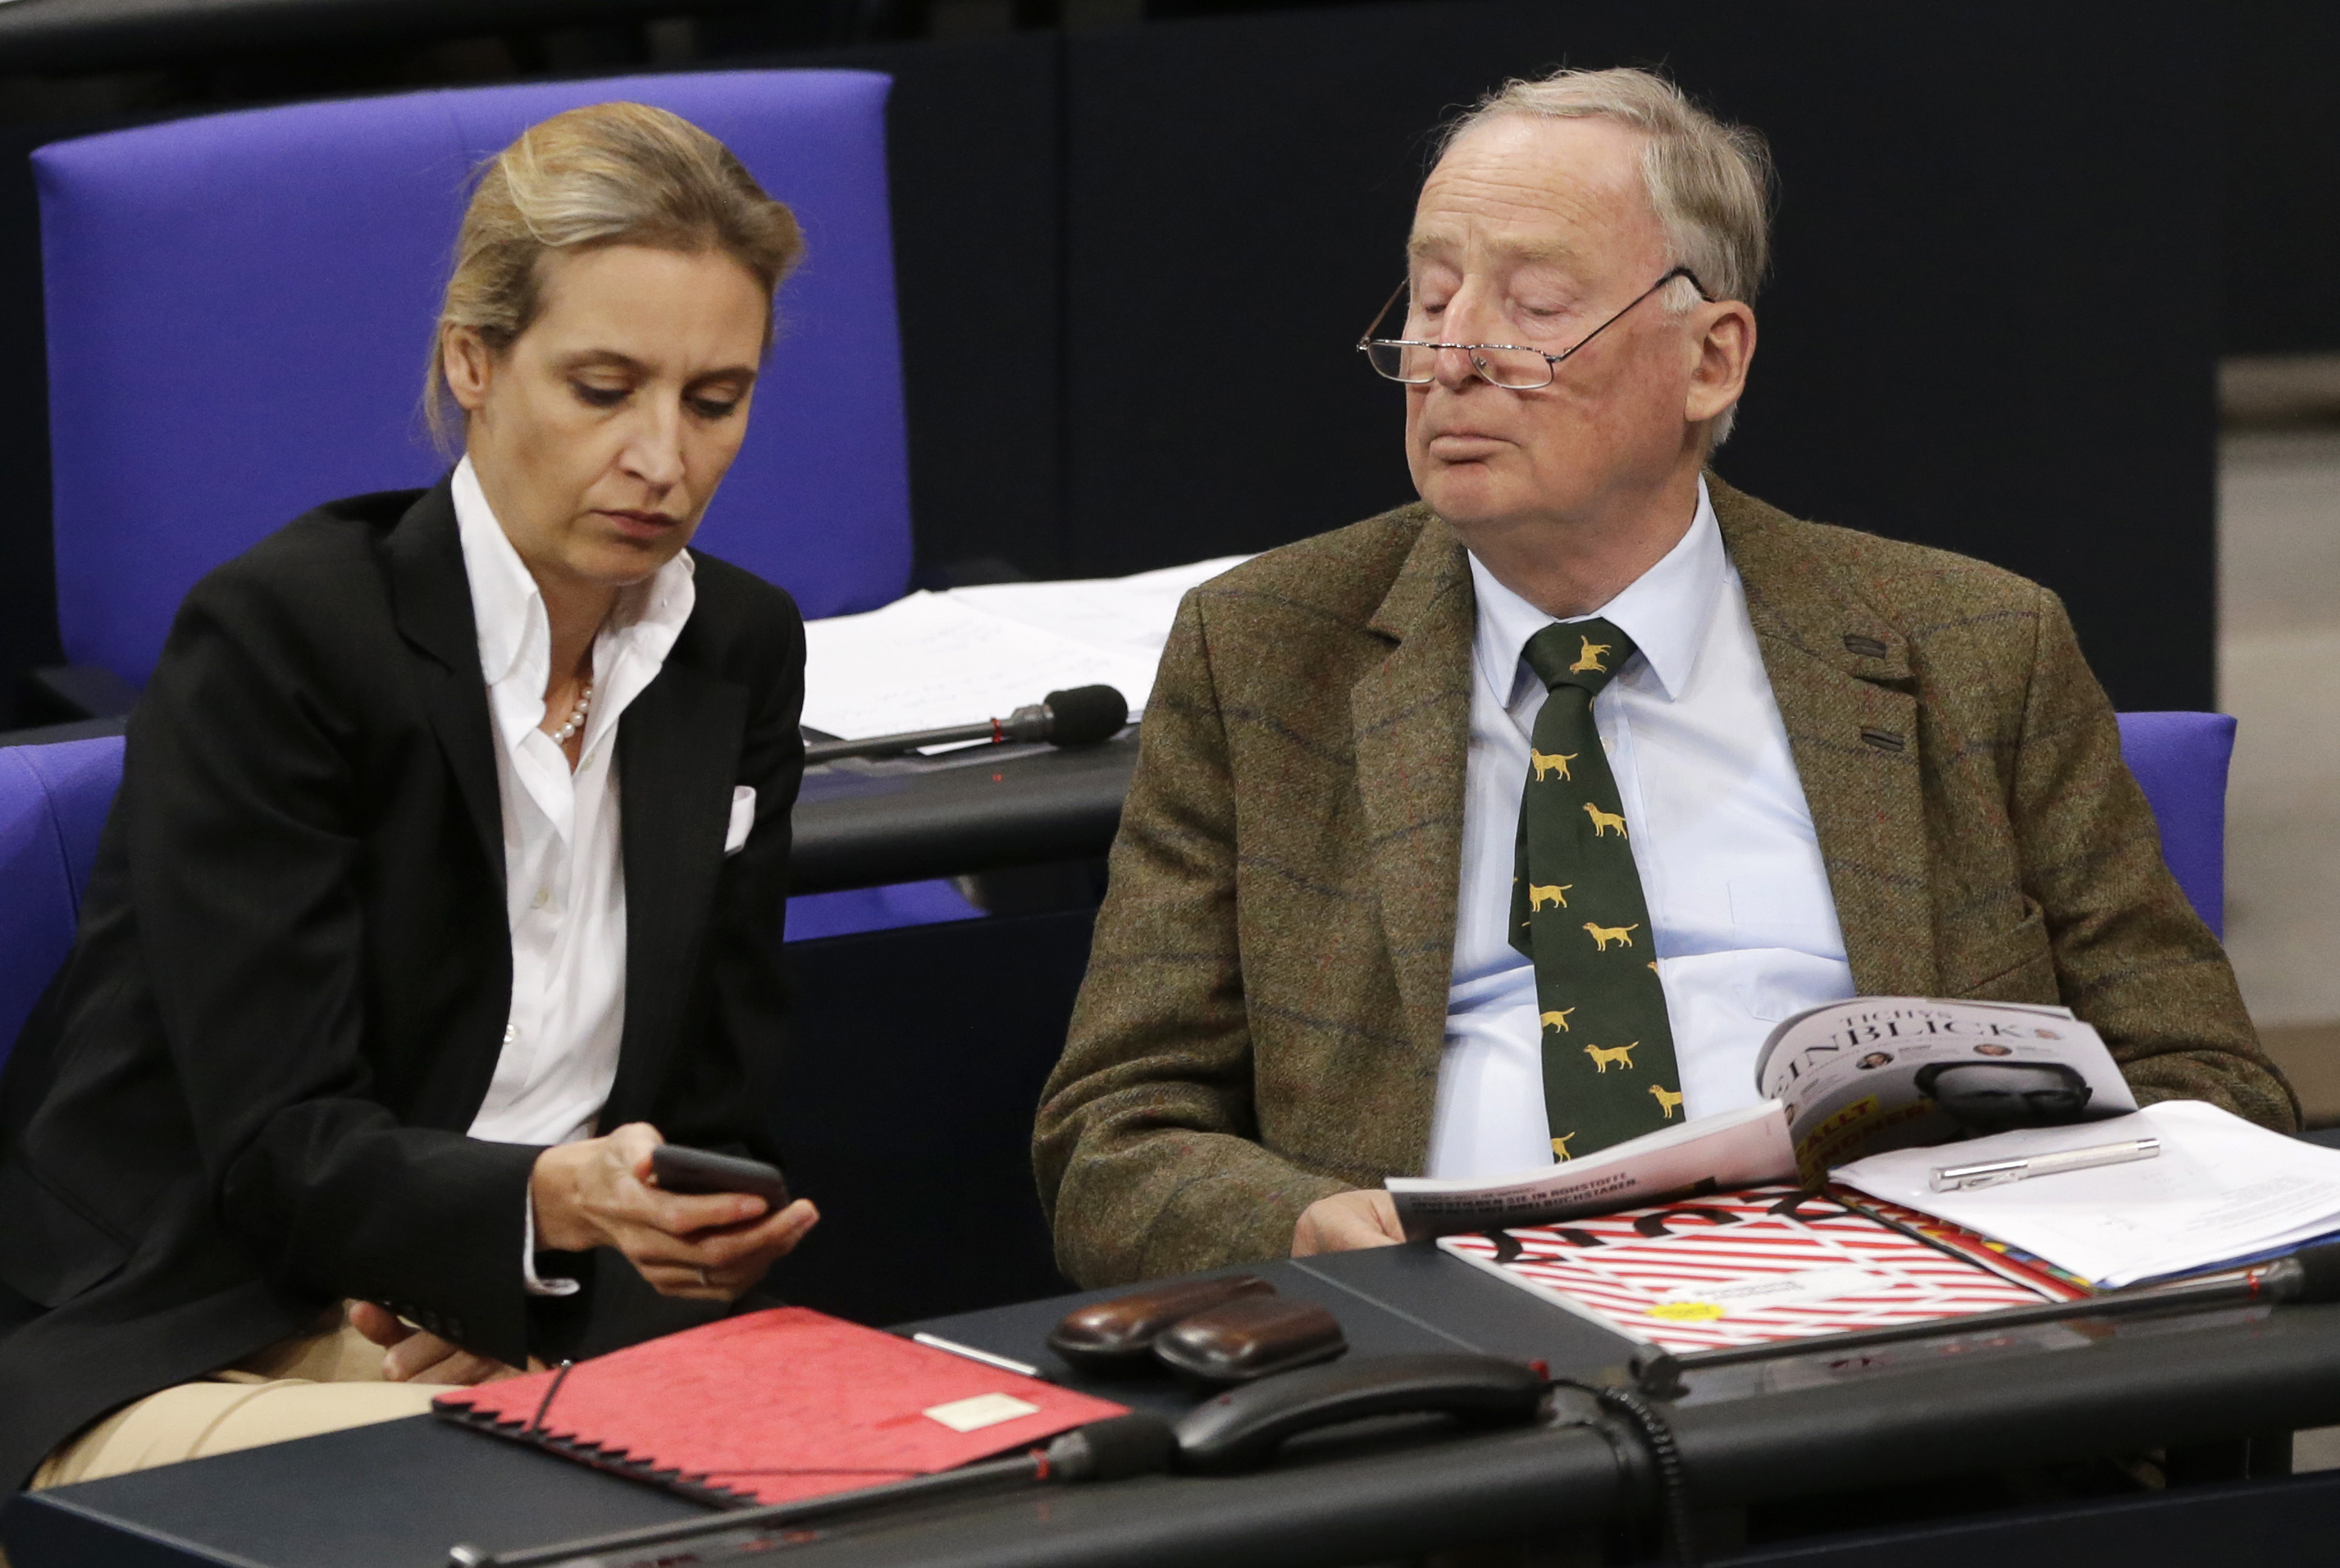 Alice Weidel and Alexander Gauland, parliamentary leaders of the Alternative for Germany.